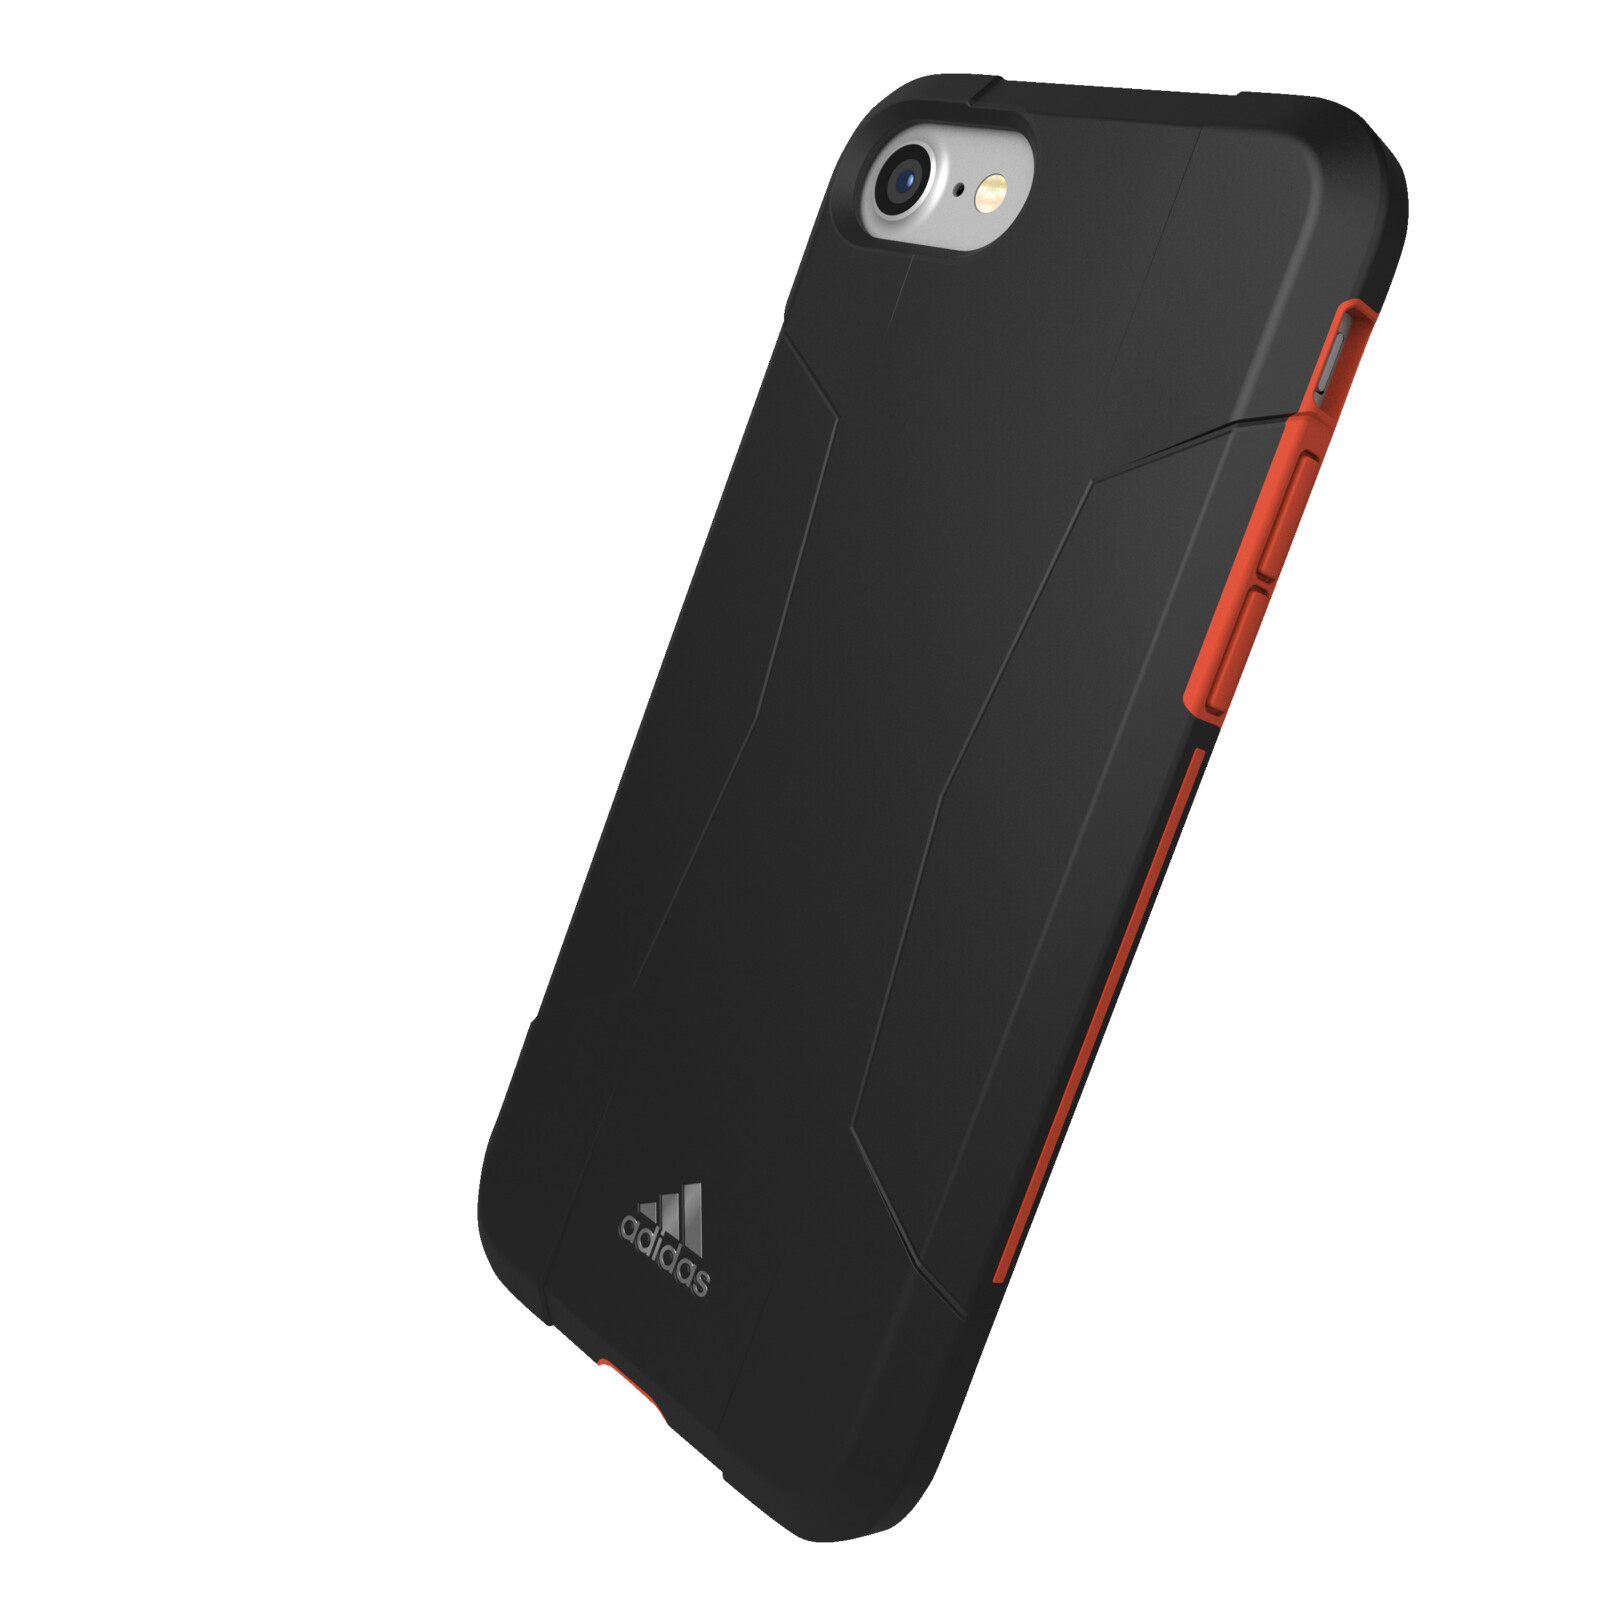 Details zu ADIDAS SPORT 29557 Handyhülle, Apple iPhone 6, iPhone 6s, iPhone 7, iPhone 8, Sc